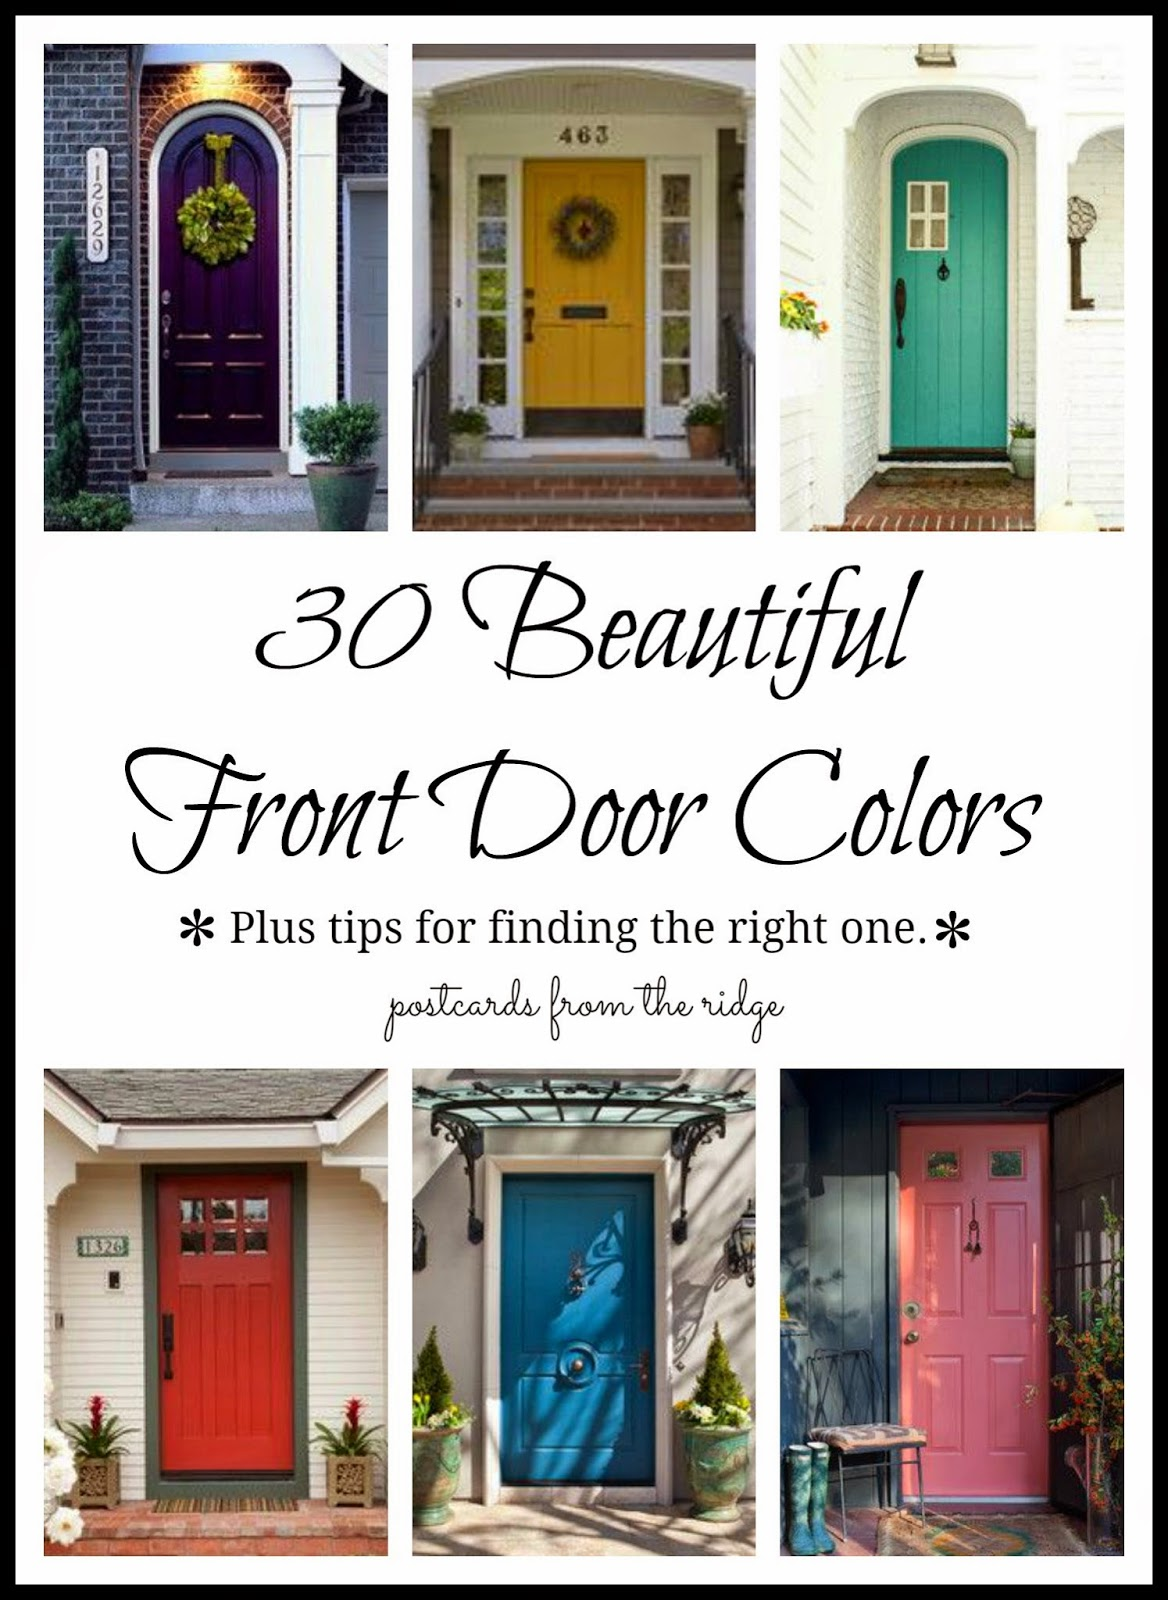 Benjamin moore front door paint colors - 30 Front Door Colors With Tips For Choosing The Right One